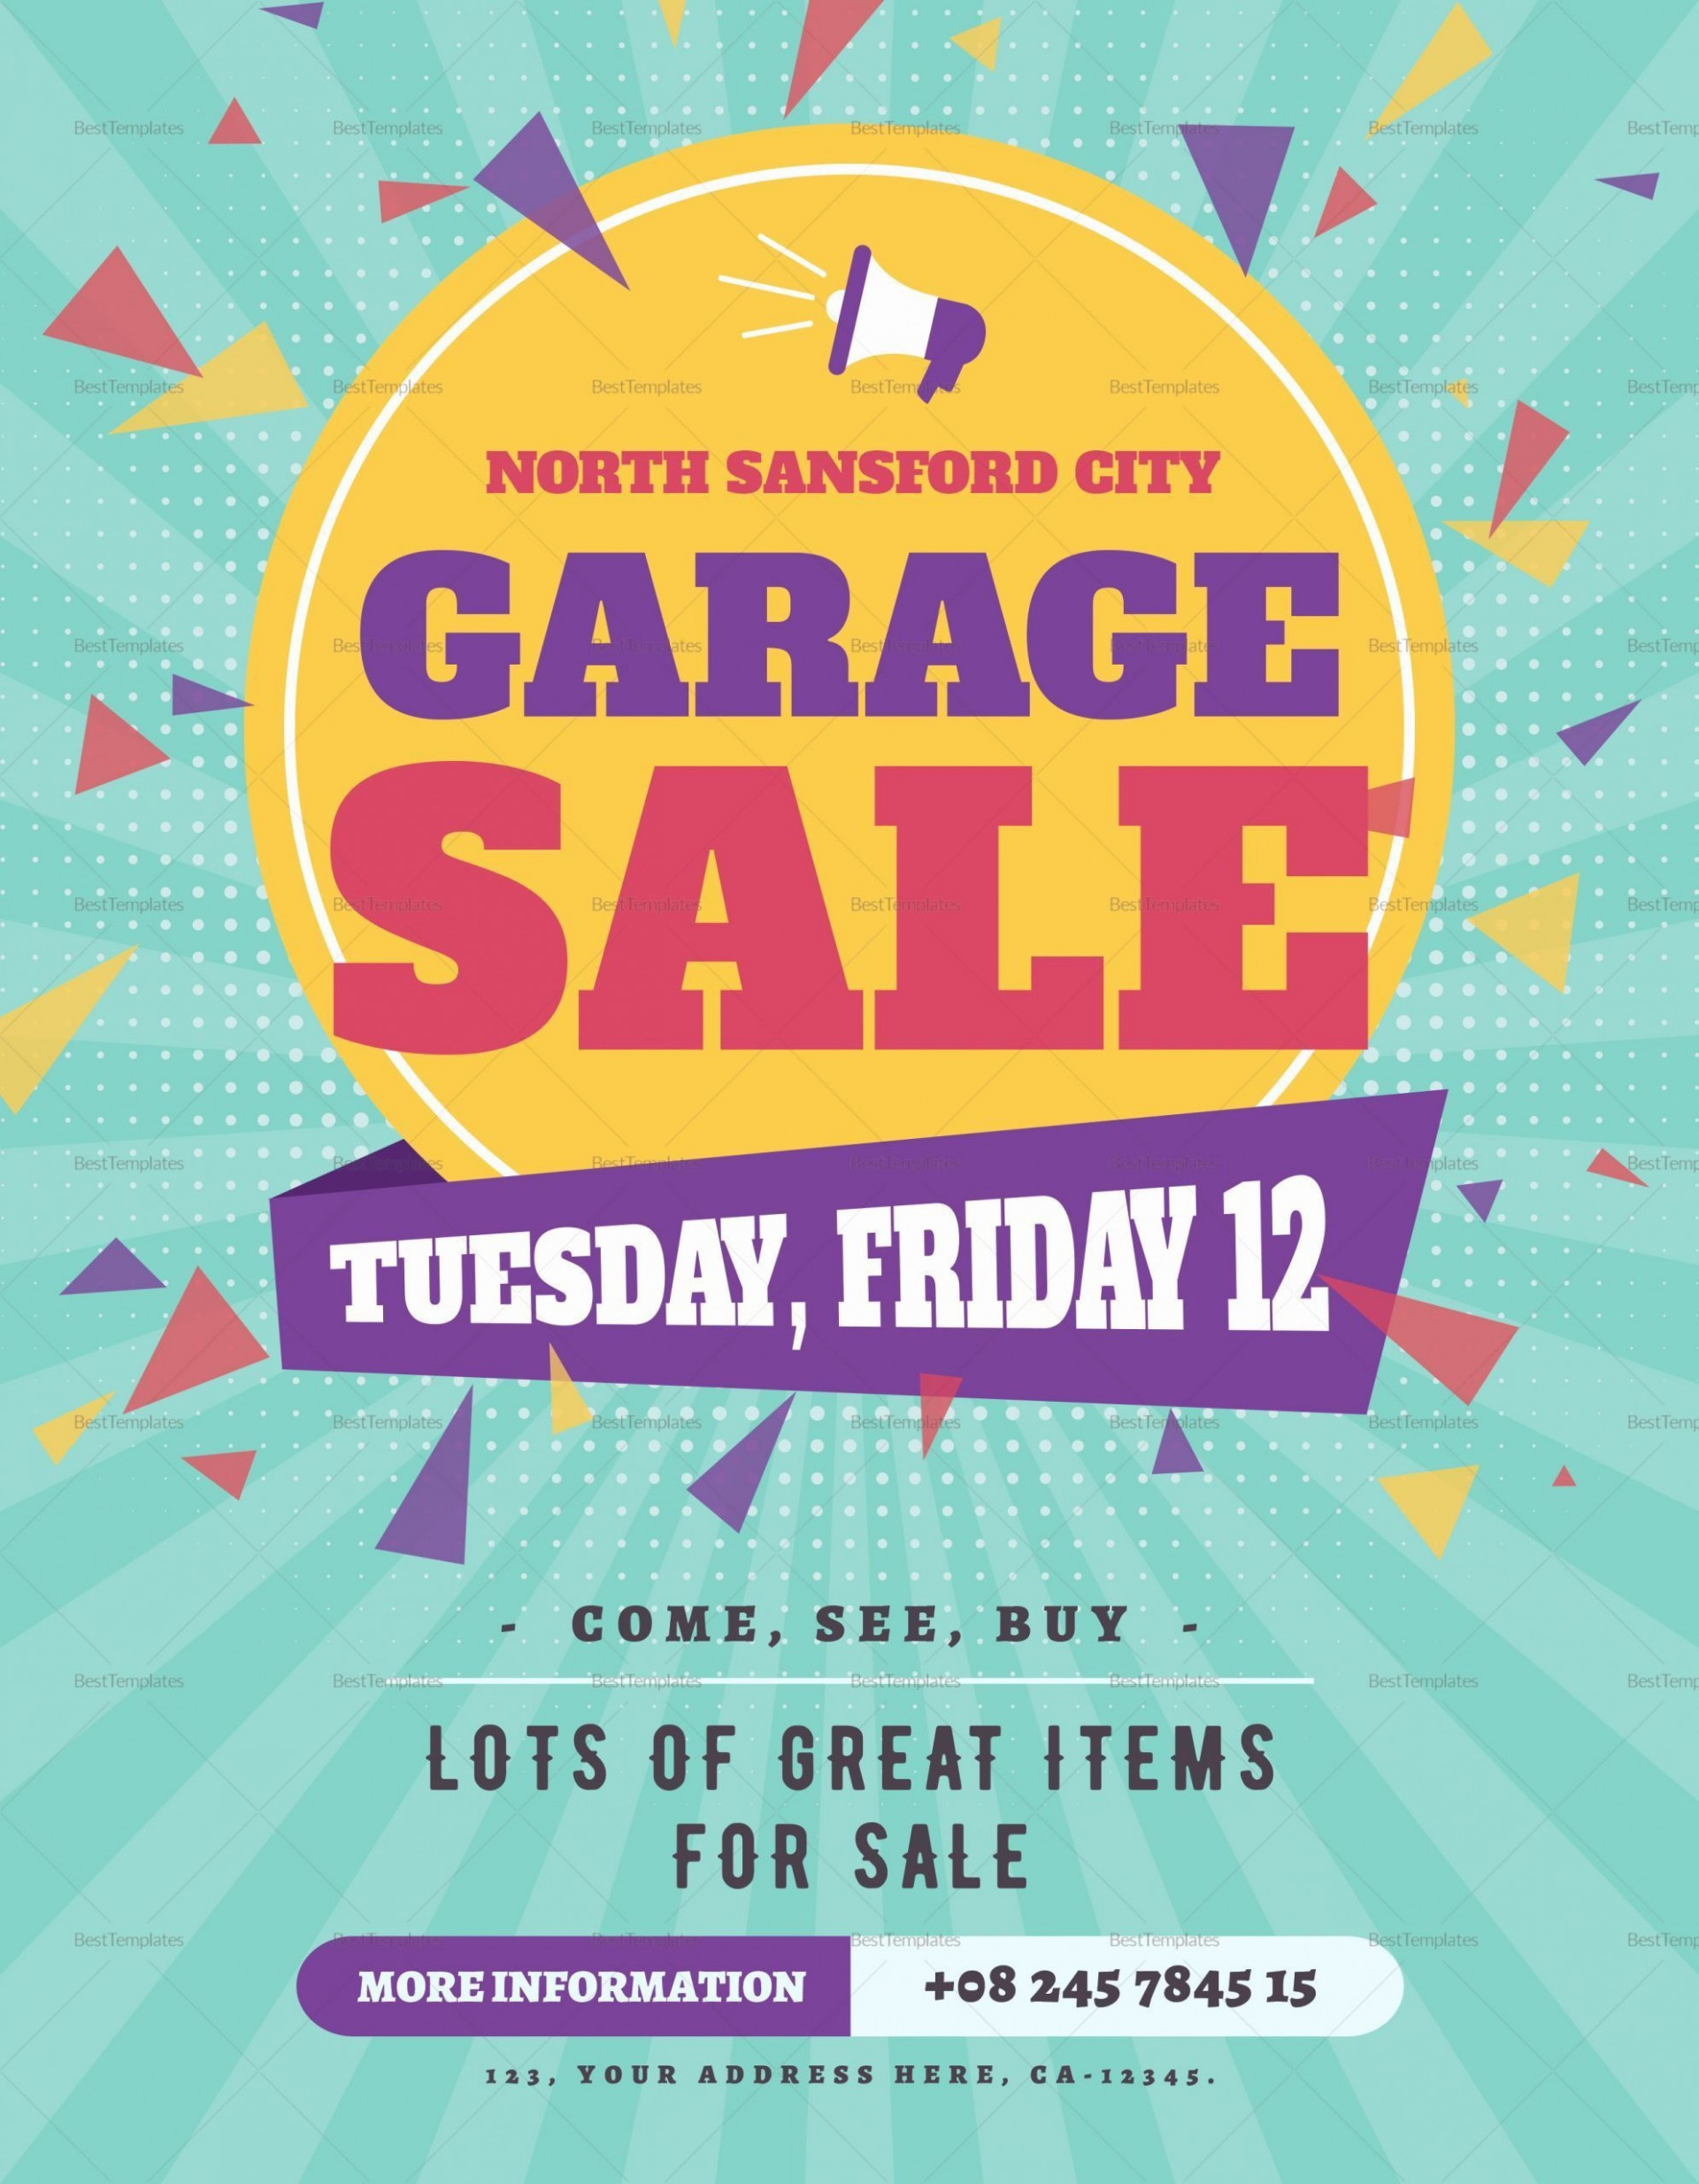 006 Imposing Yard Sale Flyer Template Free High Resolution  Community Garage1920